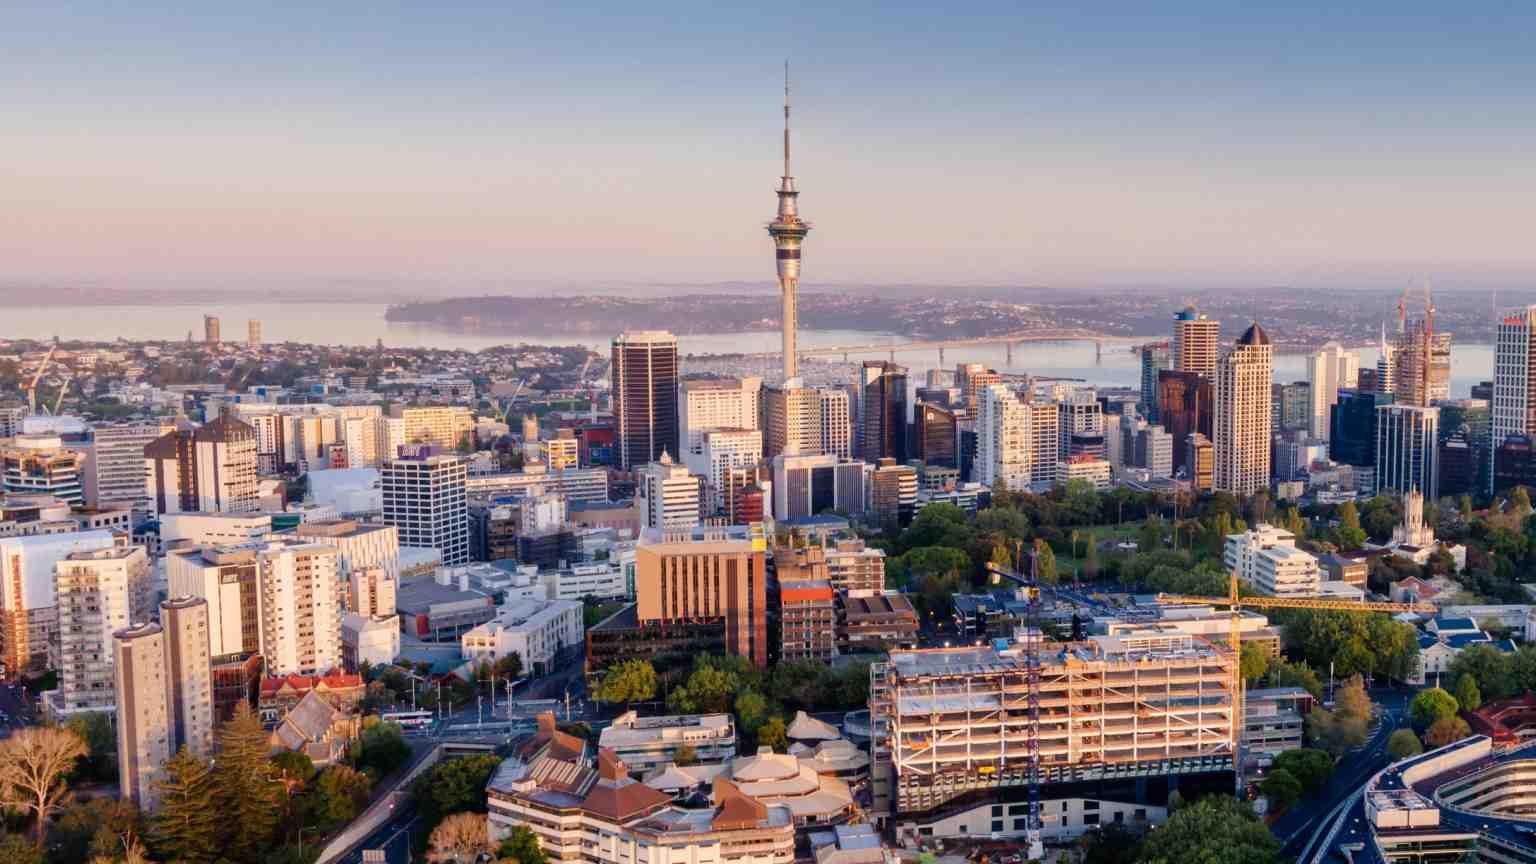 19 OCTOBER, AUCKLAND, NEW ZEALAND. Aerial View Of Auckland City Skyline at sunrise